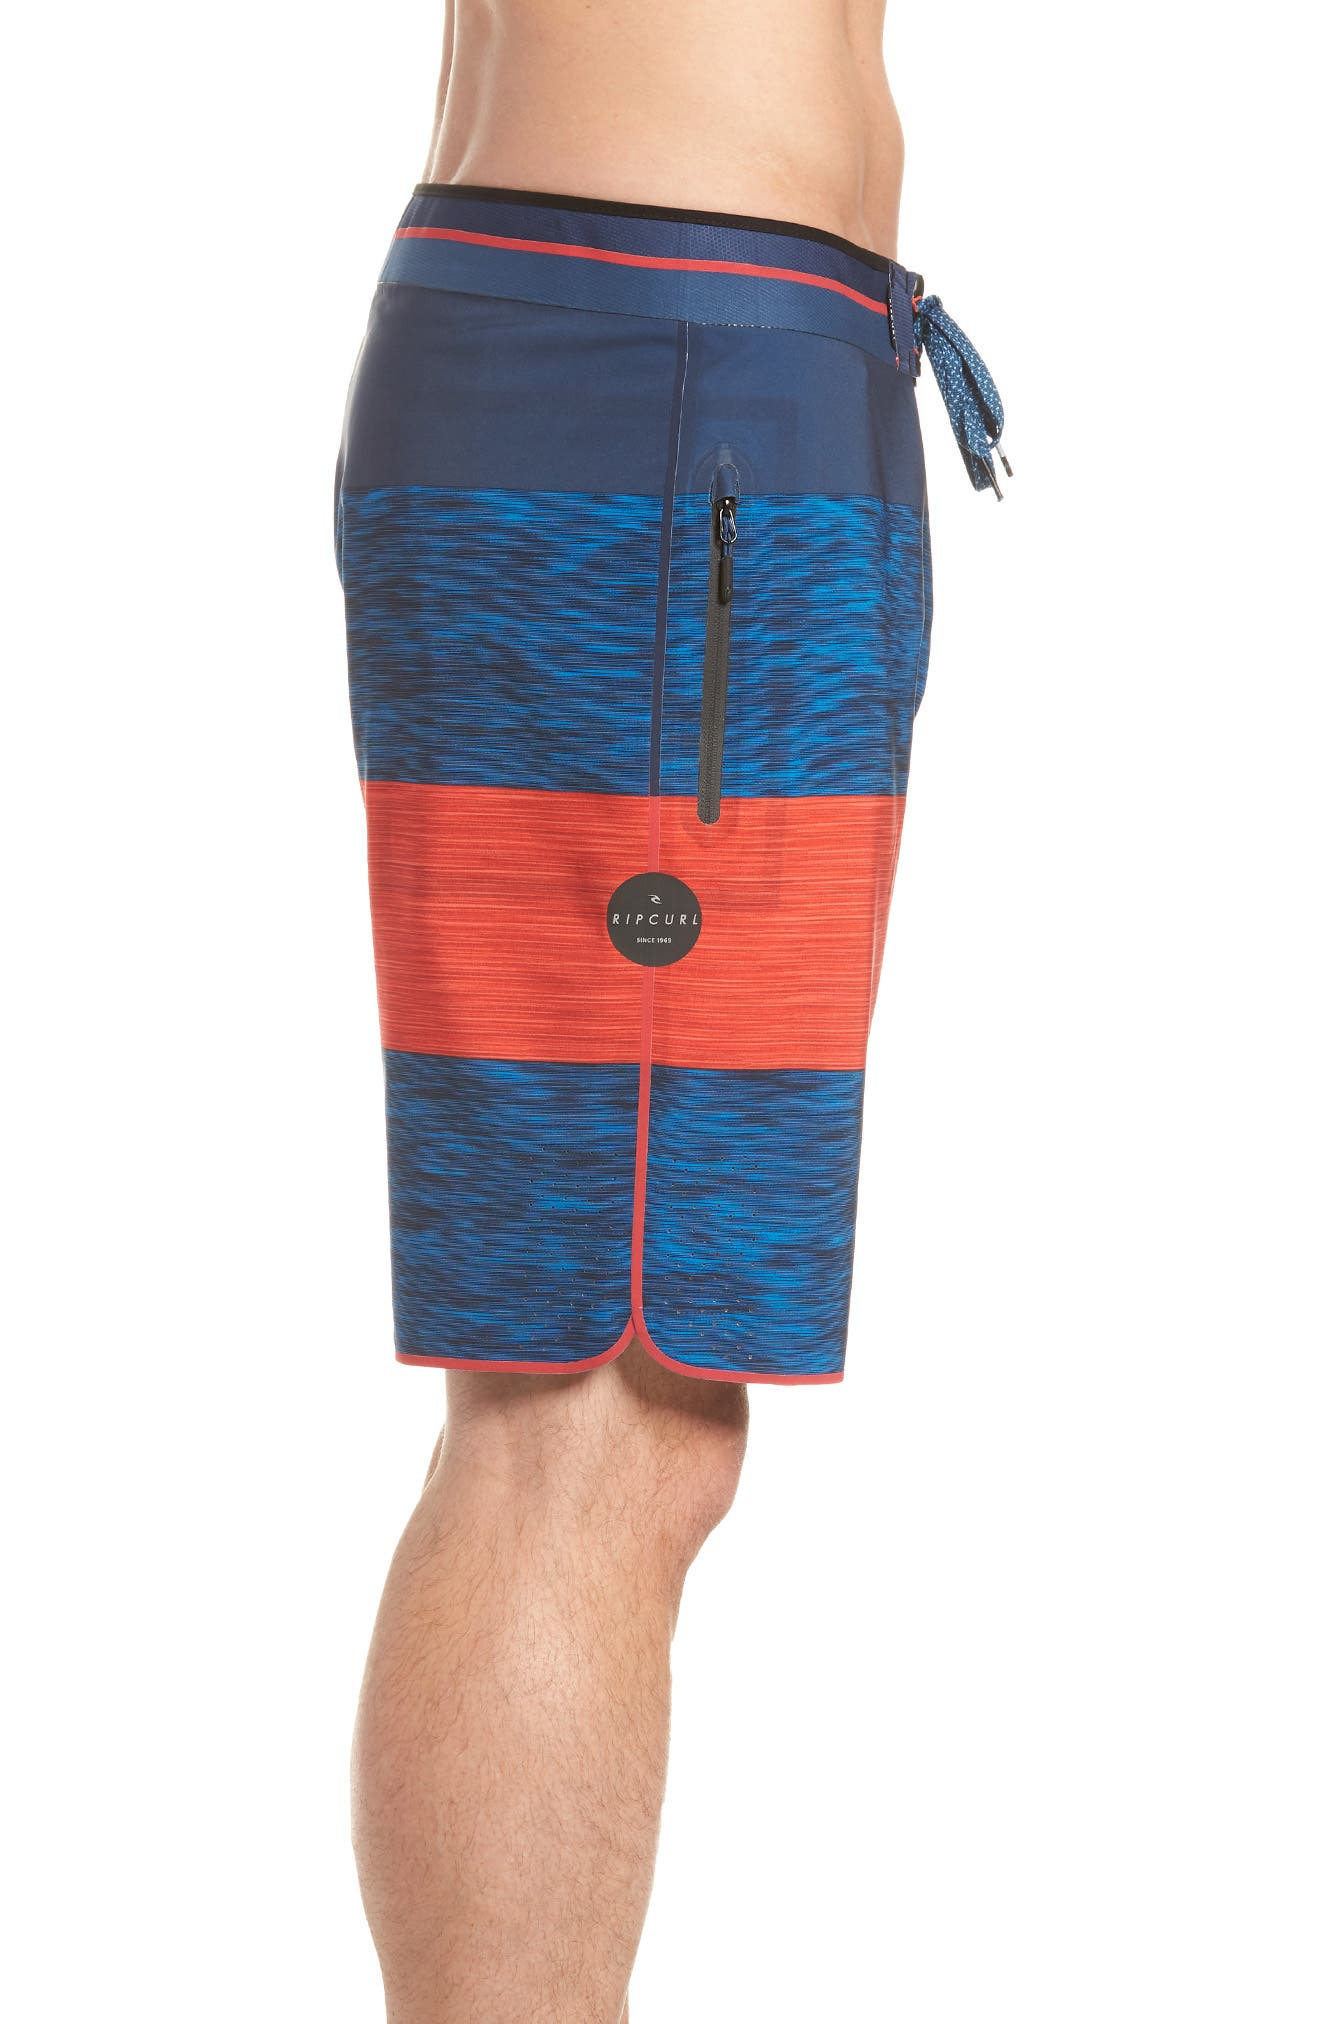 Mirage Bends Ultimate Board Shorts,                             Alternate thumbnail 3, color,                             NAVY